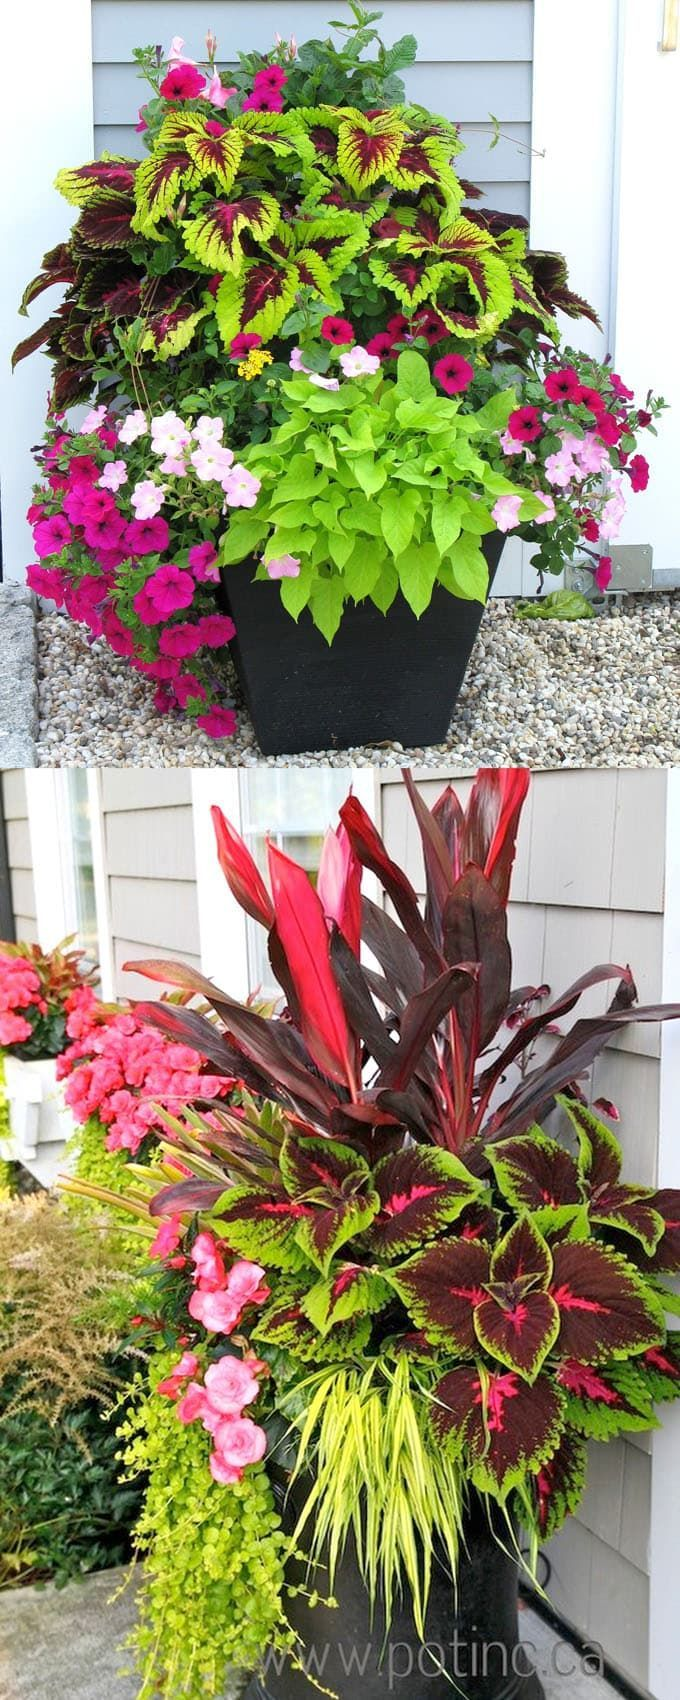 Best Shade Plants 30 Gorgeous Container Garden Planting Lists Pinterest Gardening And